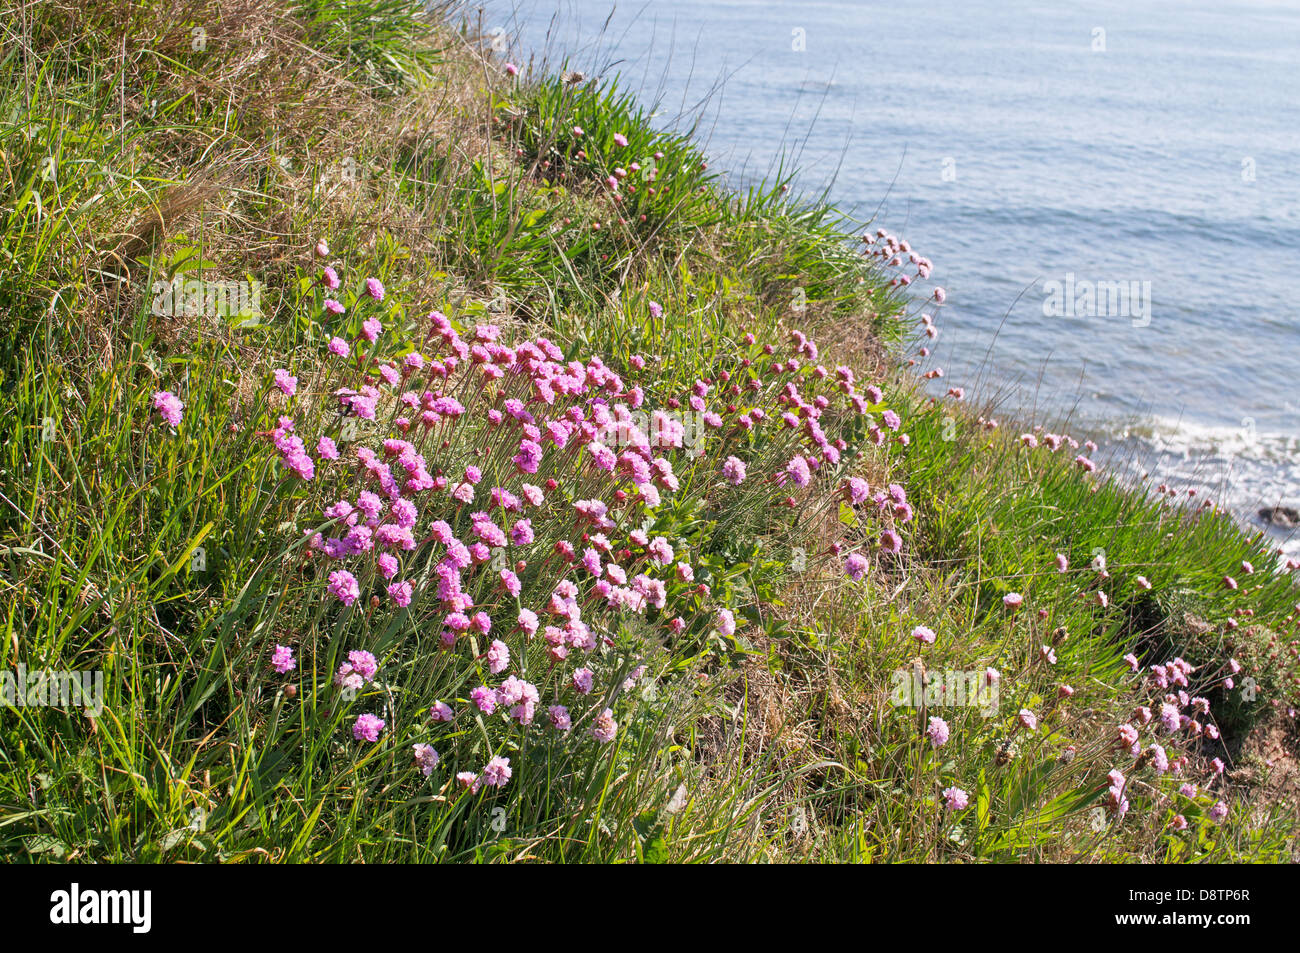 Sea pink or thrift wild flowers seen from the north sea coastal path sea pink or thrift wild flowers seen from the north sea coastal path as it passes through whitburn north east england uk mightylinksfo